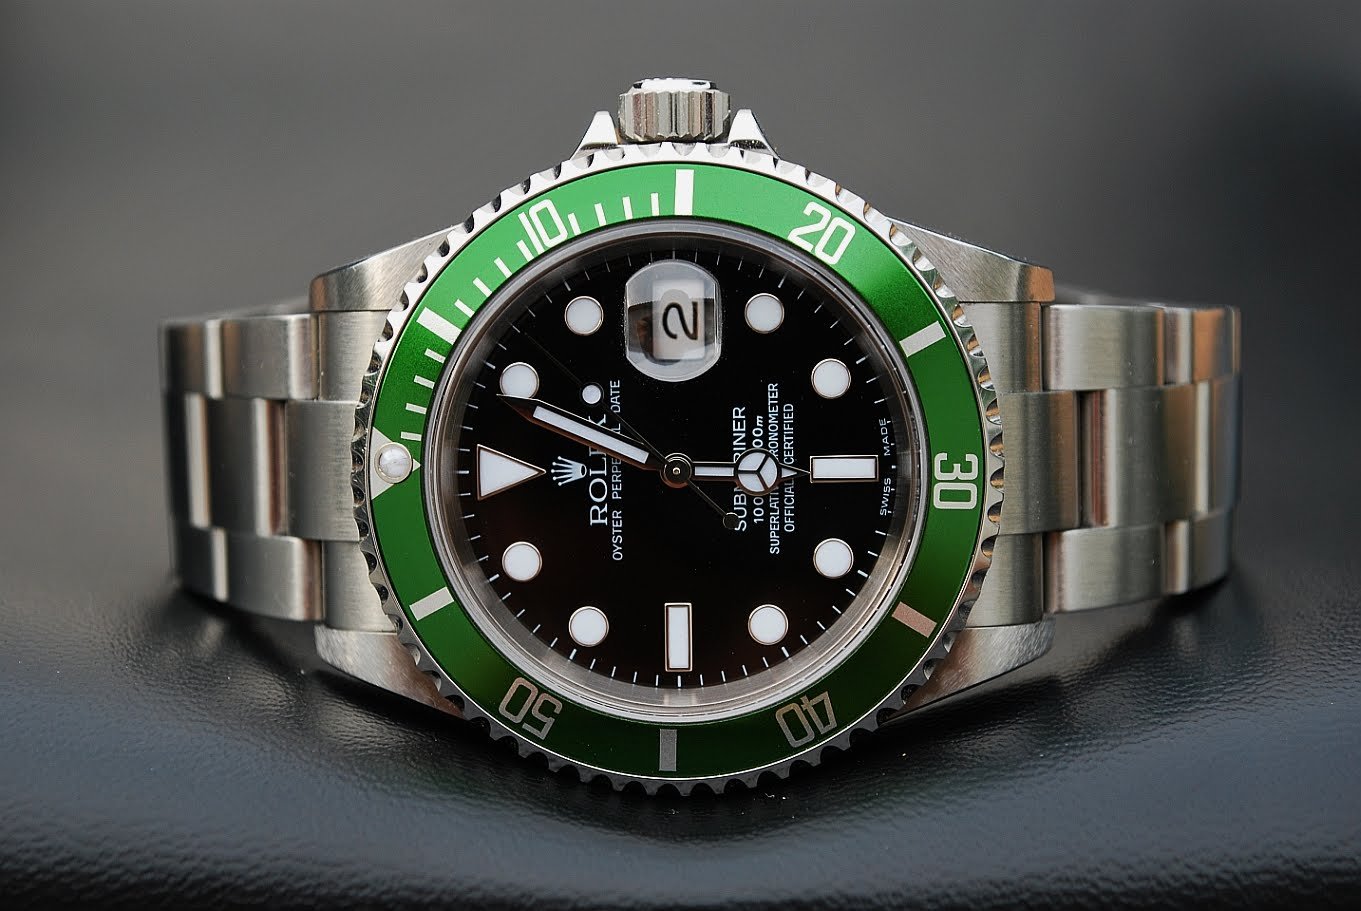 Wristwatch pictures: Rolex Submariner 16610LV - FLAT FOUR